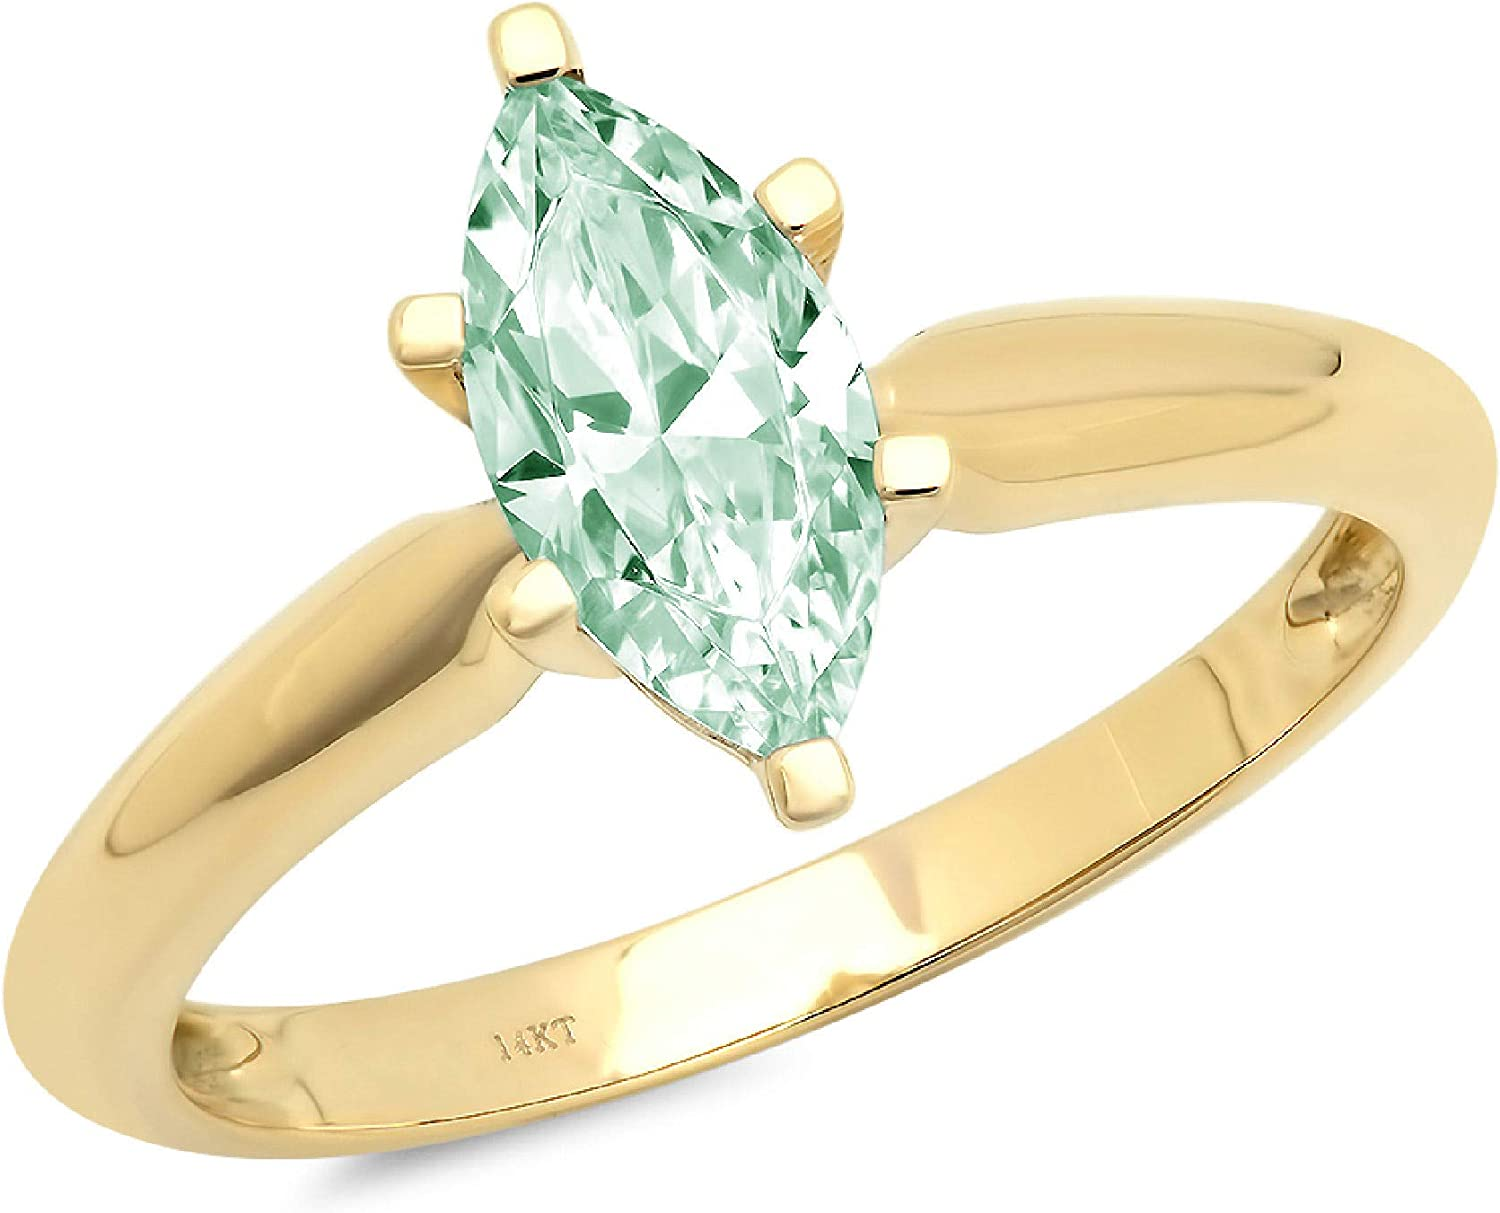 1.05 ct Brilliant Marquise Cut Solitaire Genuine VVS1 Blue Moissanite 6-Prong Stunning Classic Statement Designer Ring Solid 18K Yellow Gold for Women